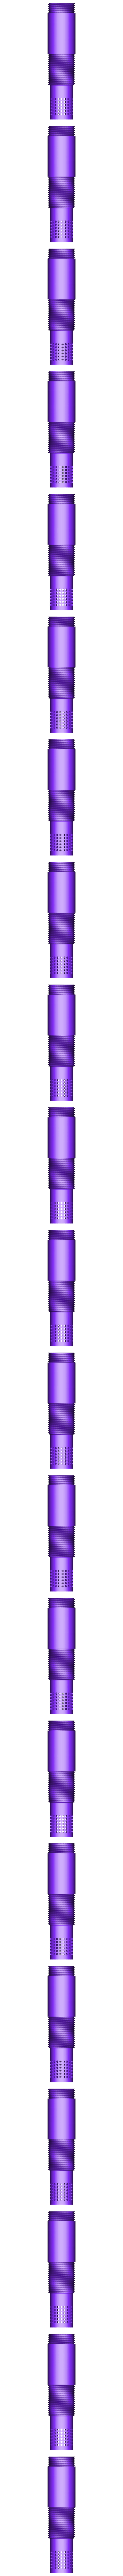 rod.stl Download STL file 7 Head Multi Cyclone Chamber v2 (Compact Size Added) • 3D printable design, kanadali